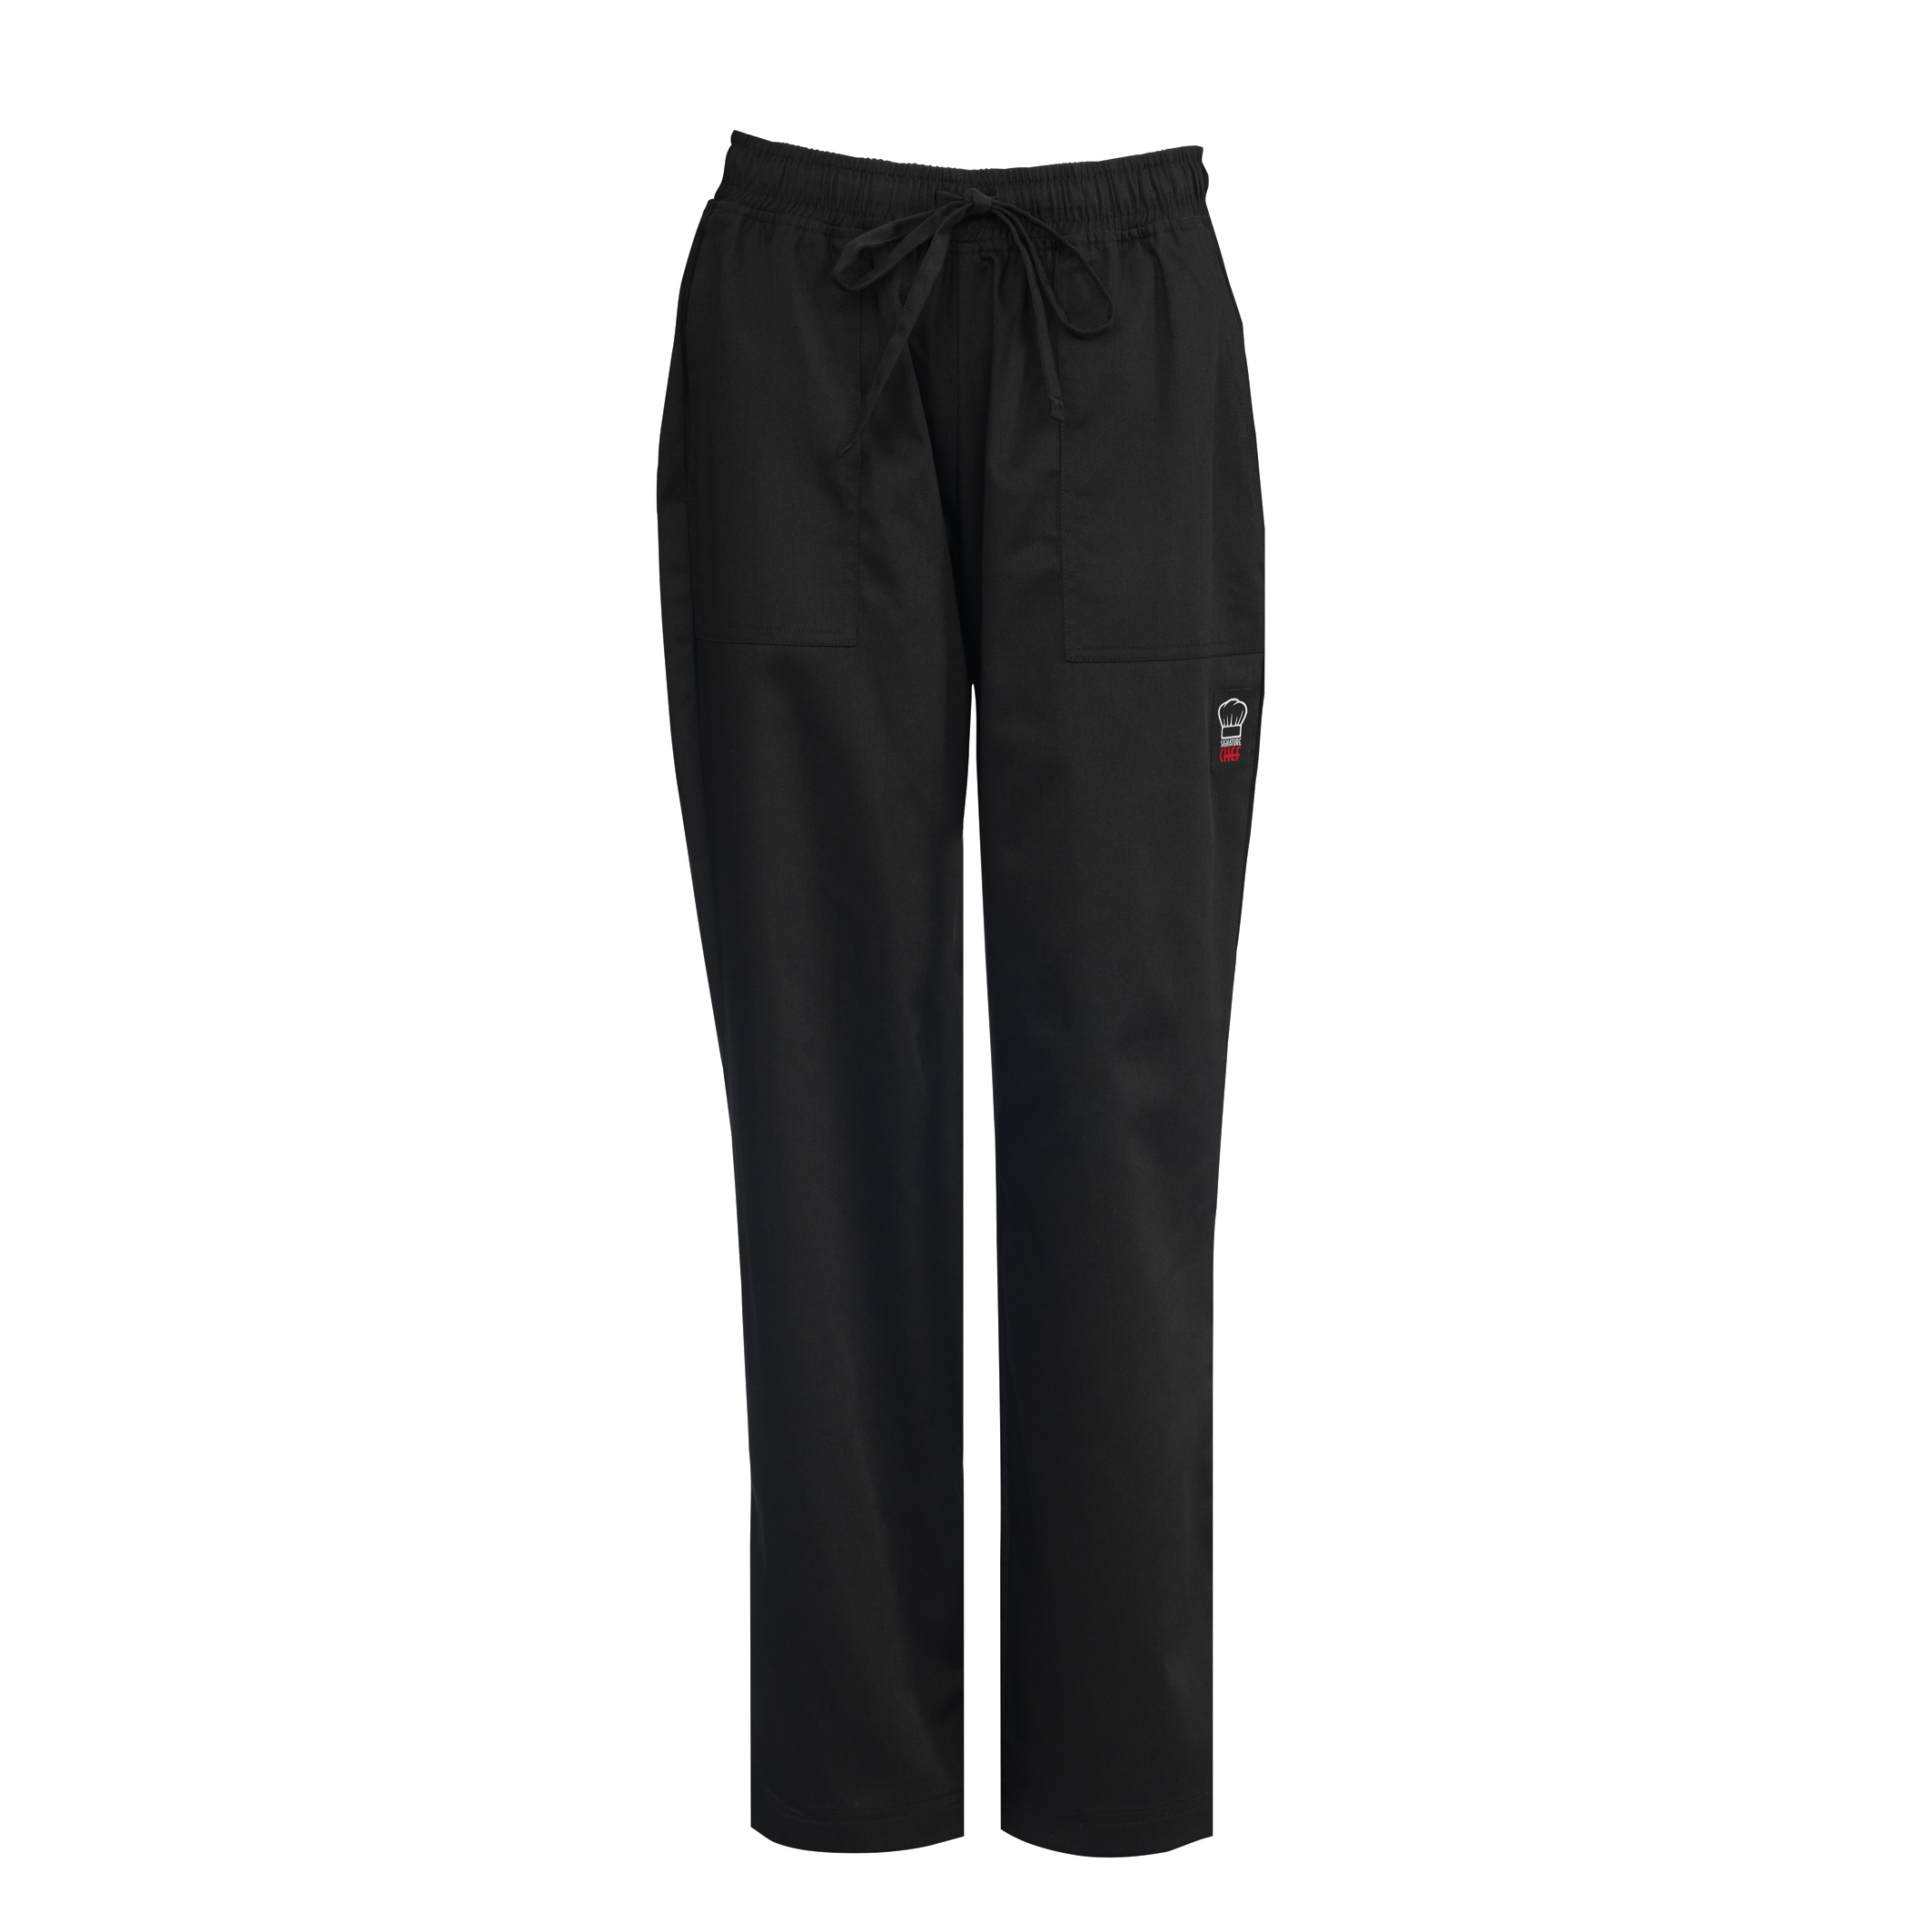 Winco UNF-8KL chef's pants